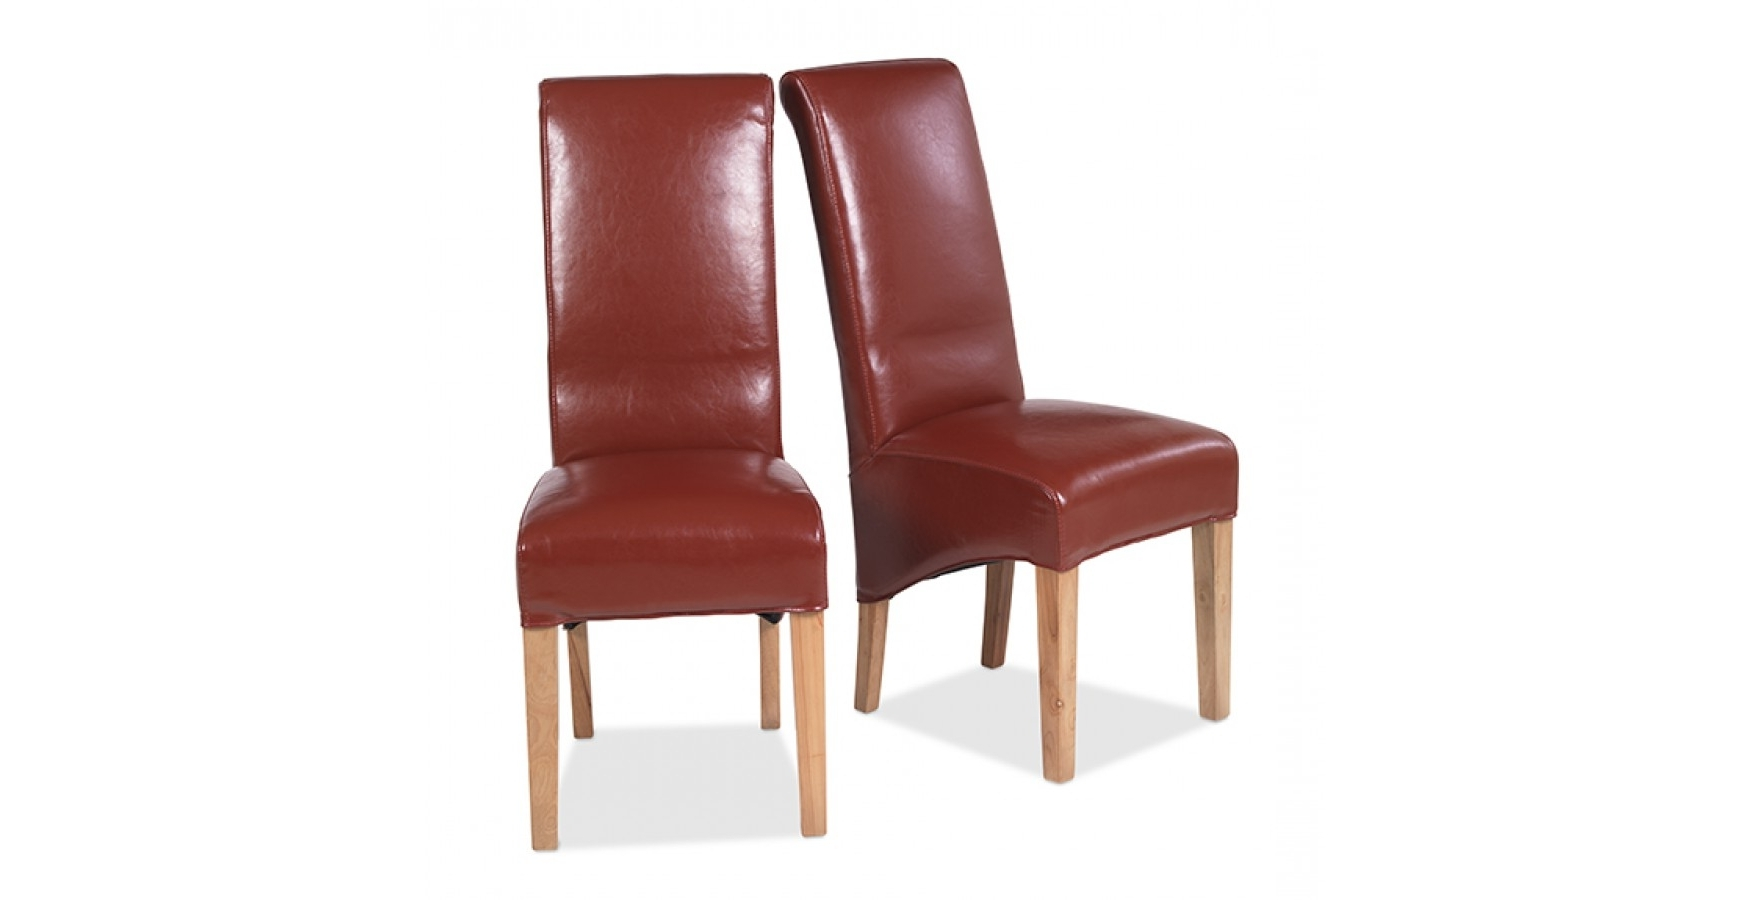 Red Leather Dining Chairs For Most Recent Cuba Oak Bonded Leather Dining Chairs Red – Pair – Lifestyle (View 10 of 25)